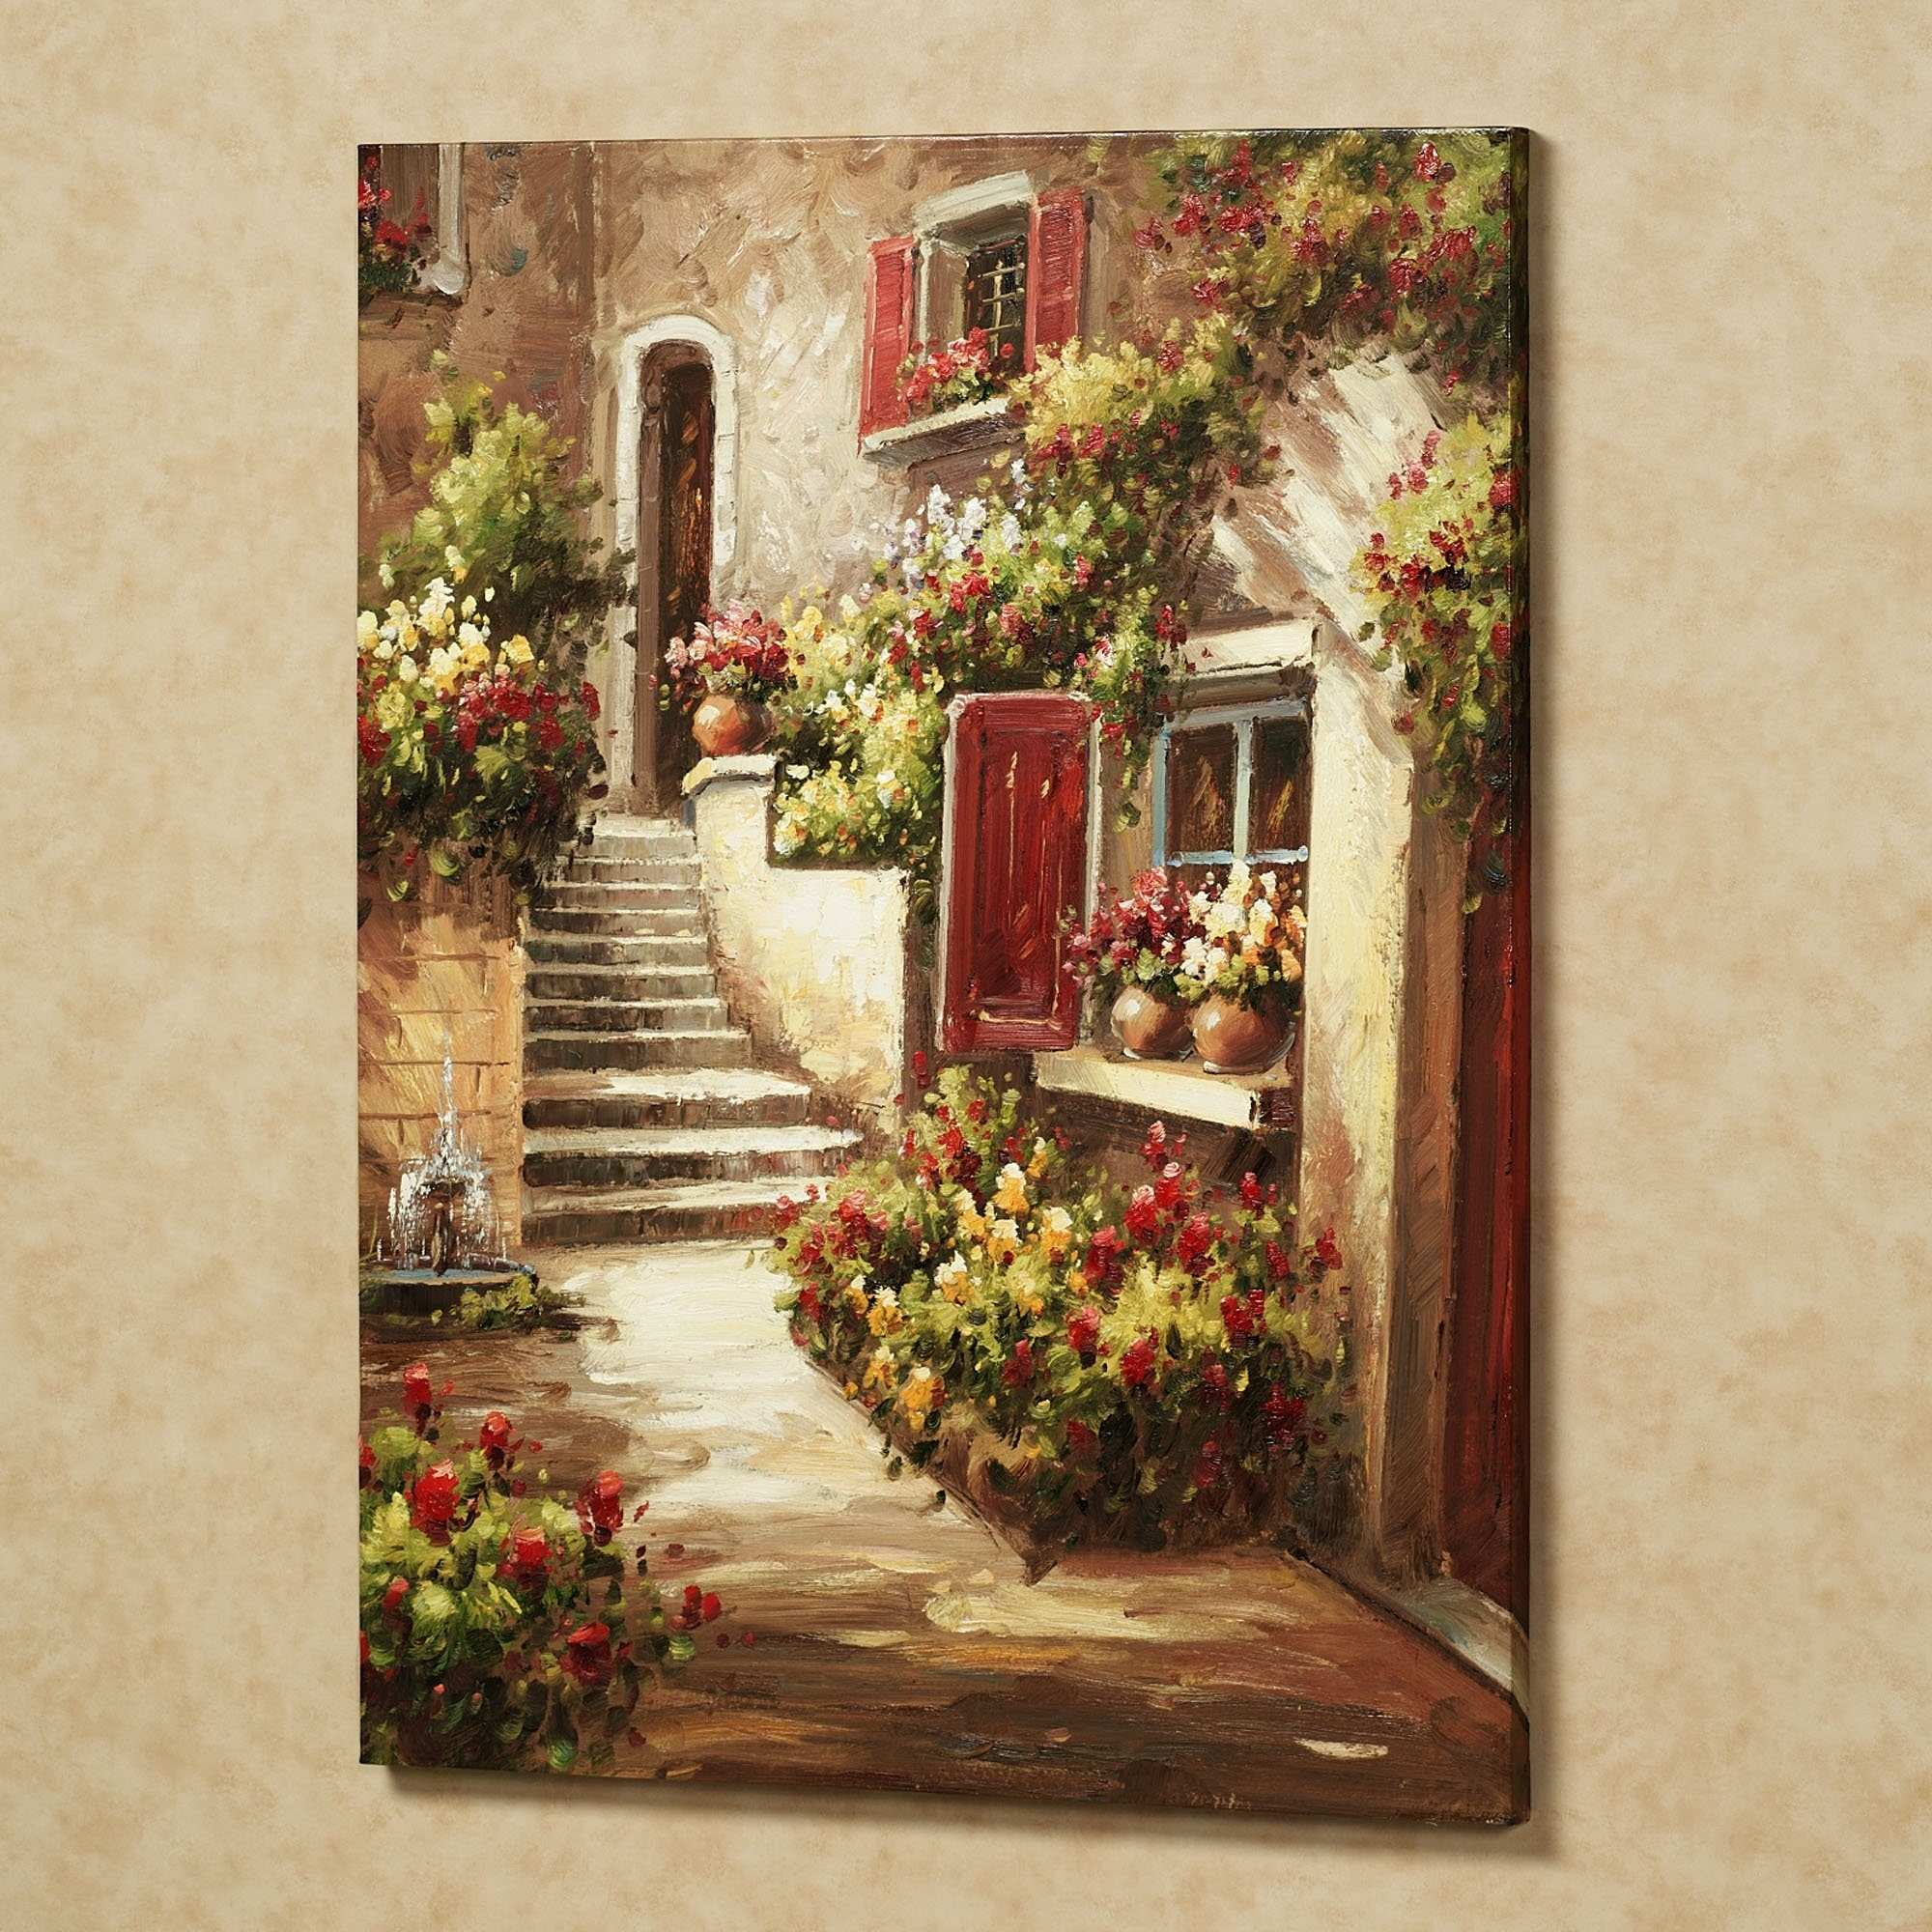 Showing s of French Country Wall Art Prints View 7 of 15 s